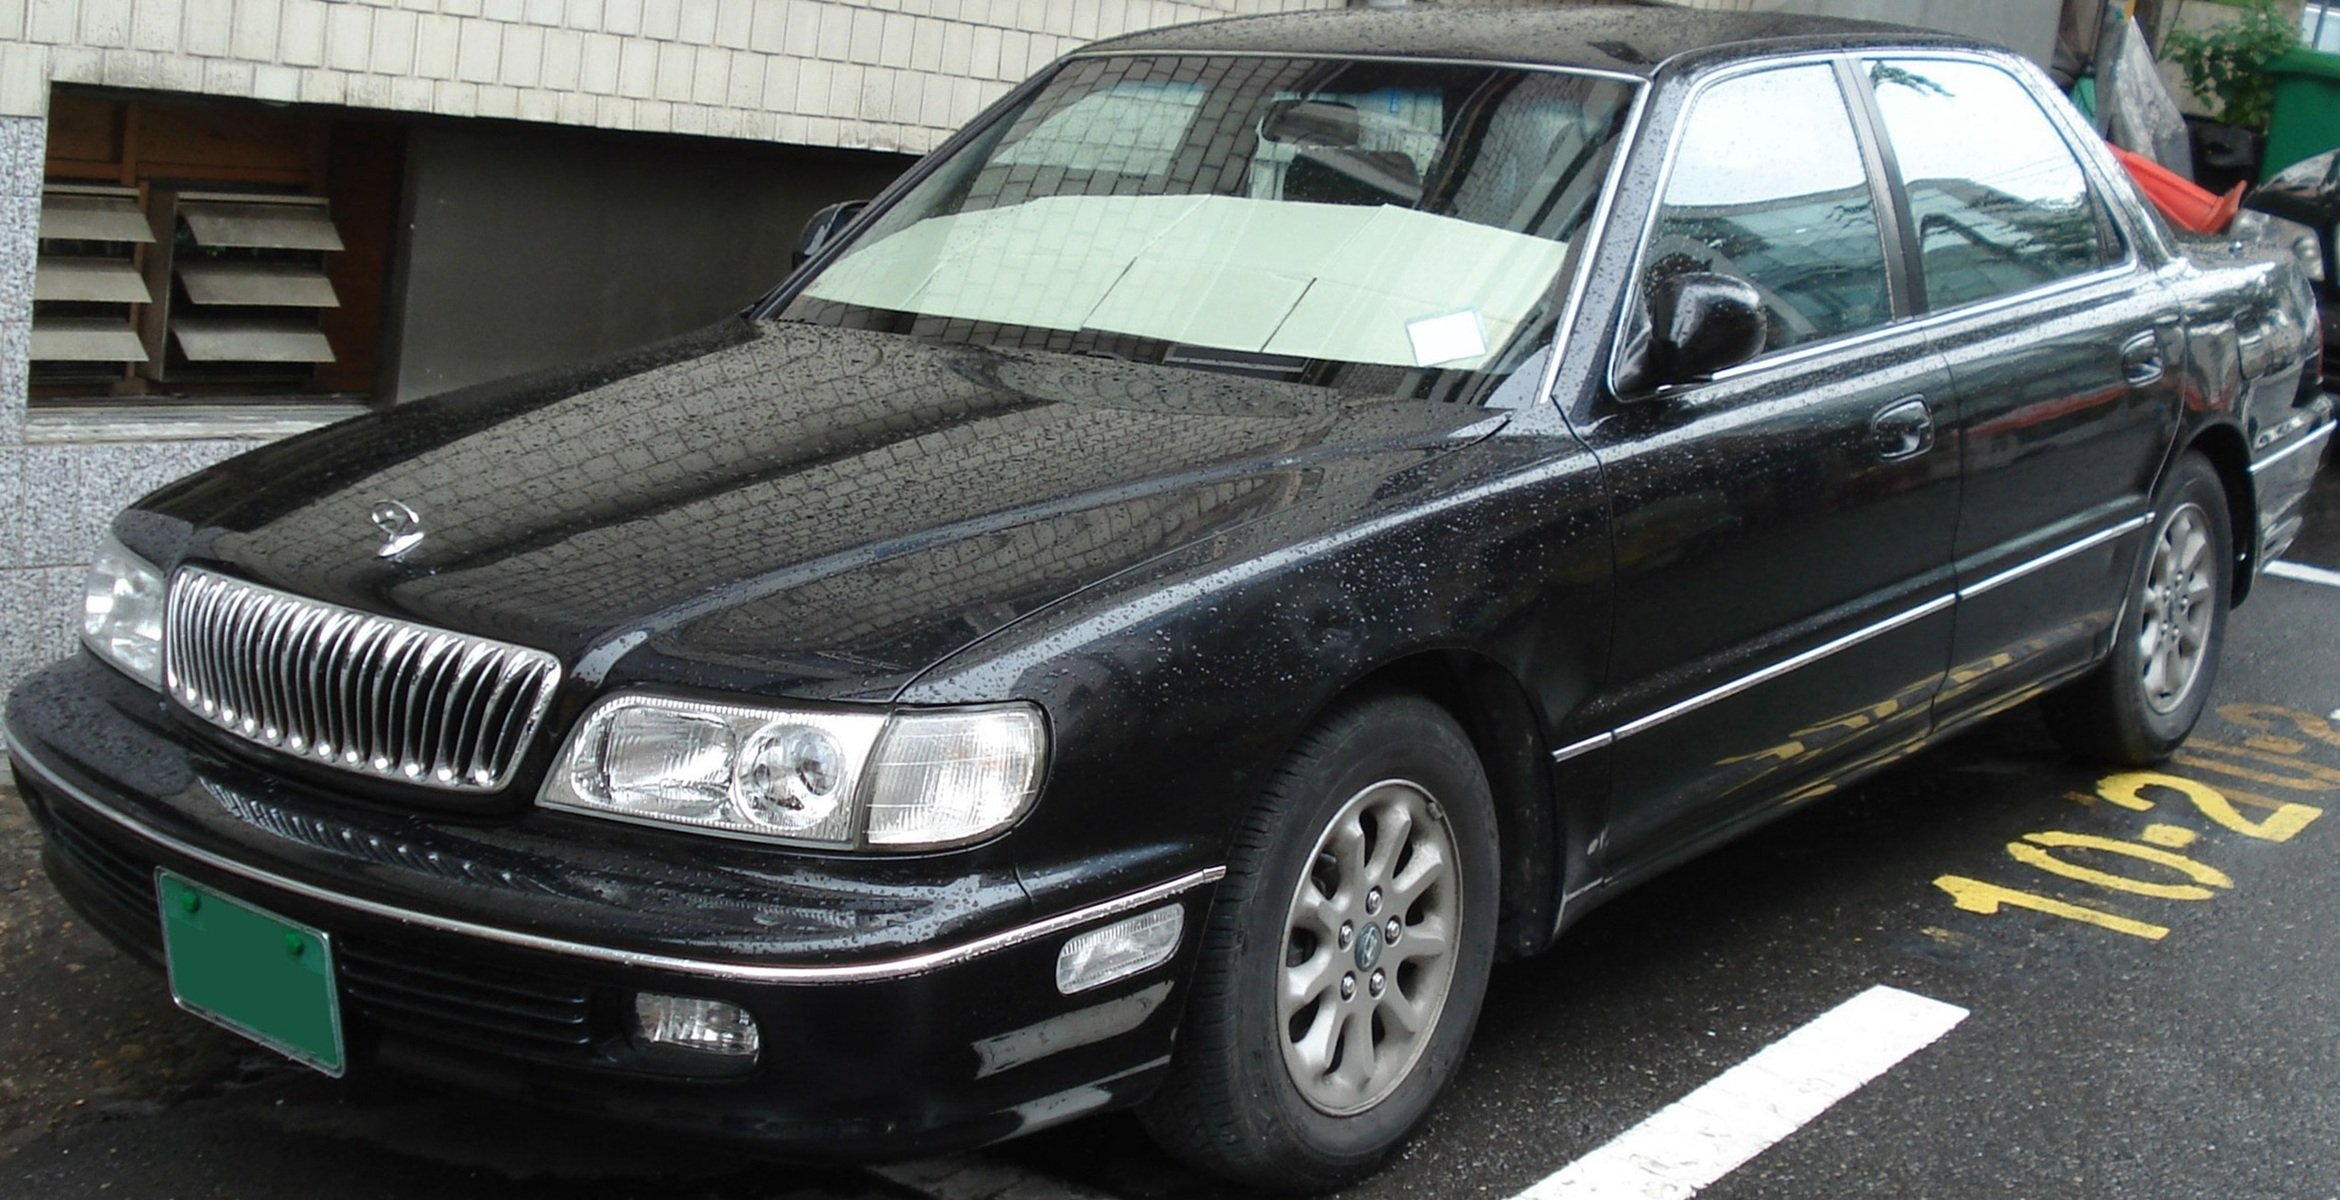 2004 Hyundai Xg   pictures, information and specs - Auto-Database.com